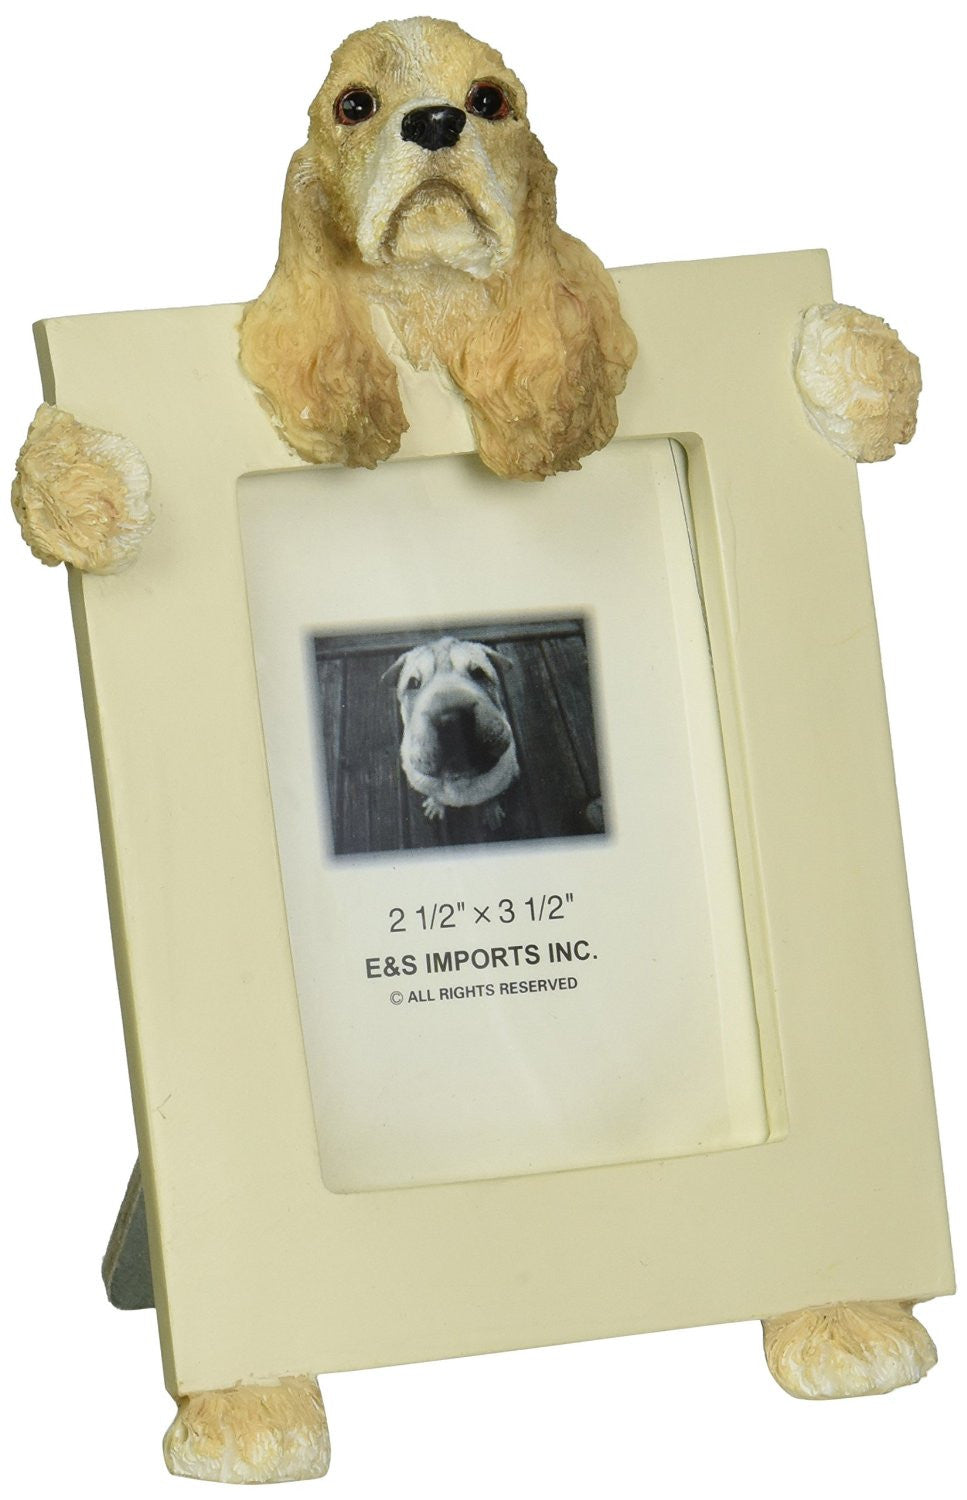 Cocker Spaniel Buff Dog Picture Frame Holder